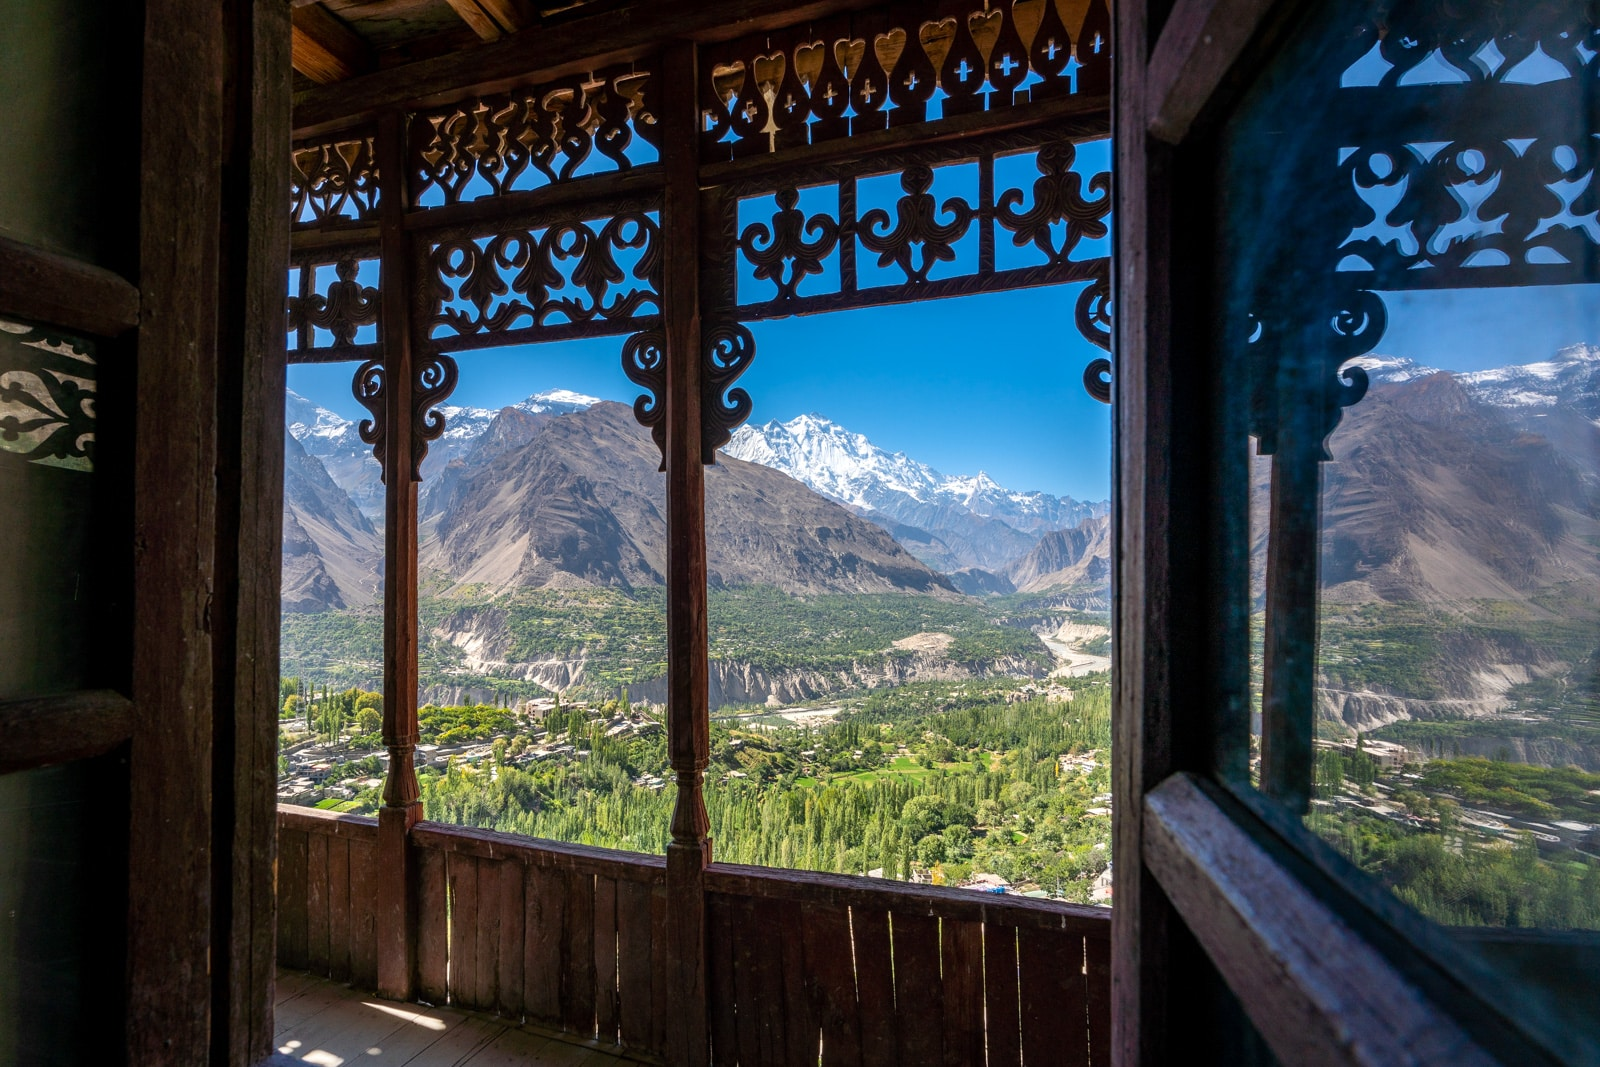 Travel tips for Pakistan - View of Hunza from Baltit Fort